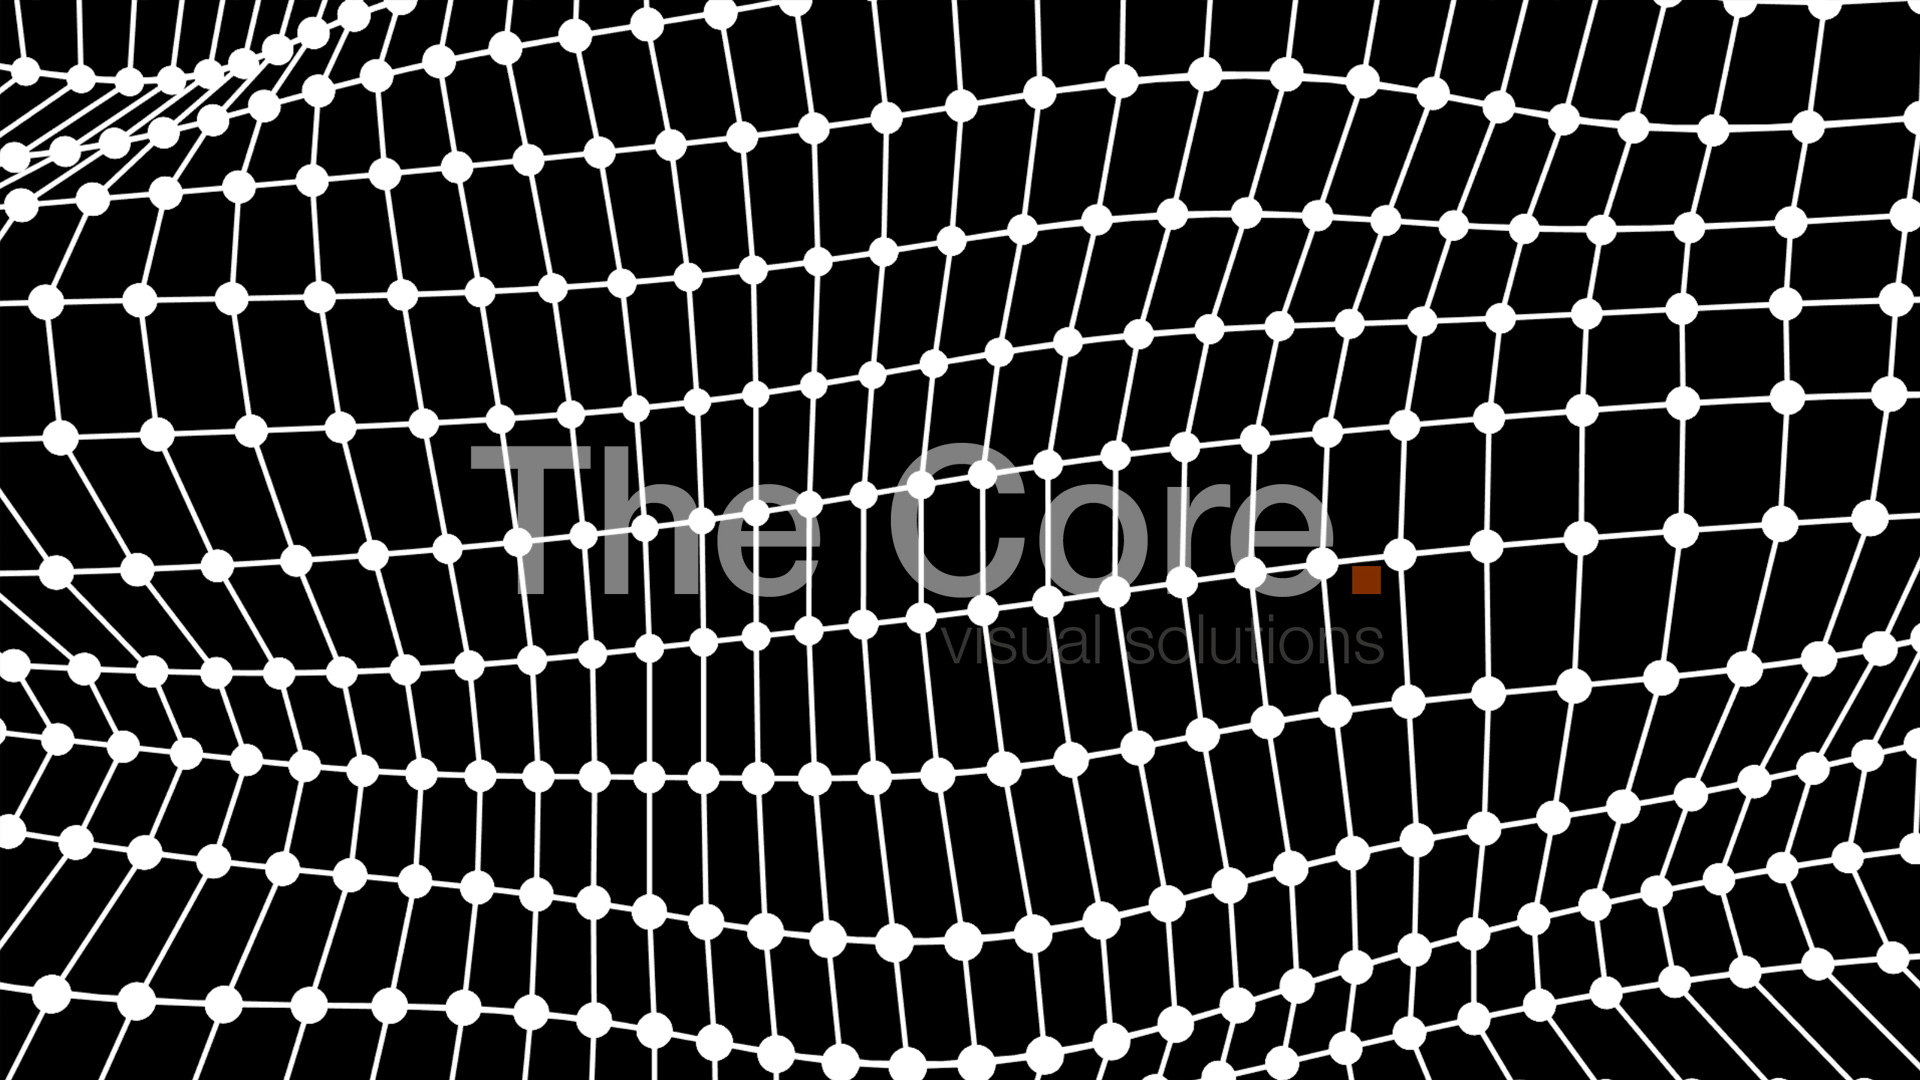 00063-WIRE-GRID-SMOOTH-1-STILL